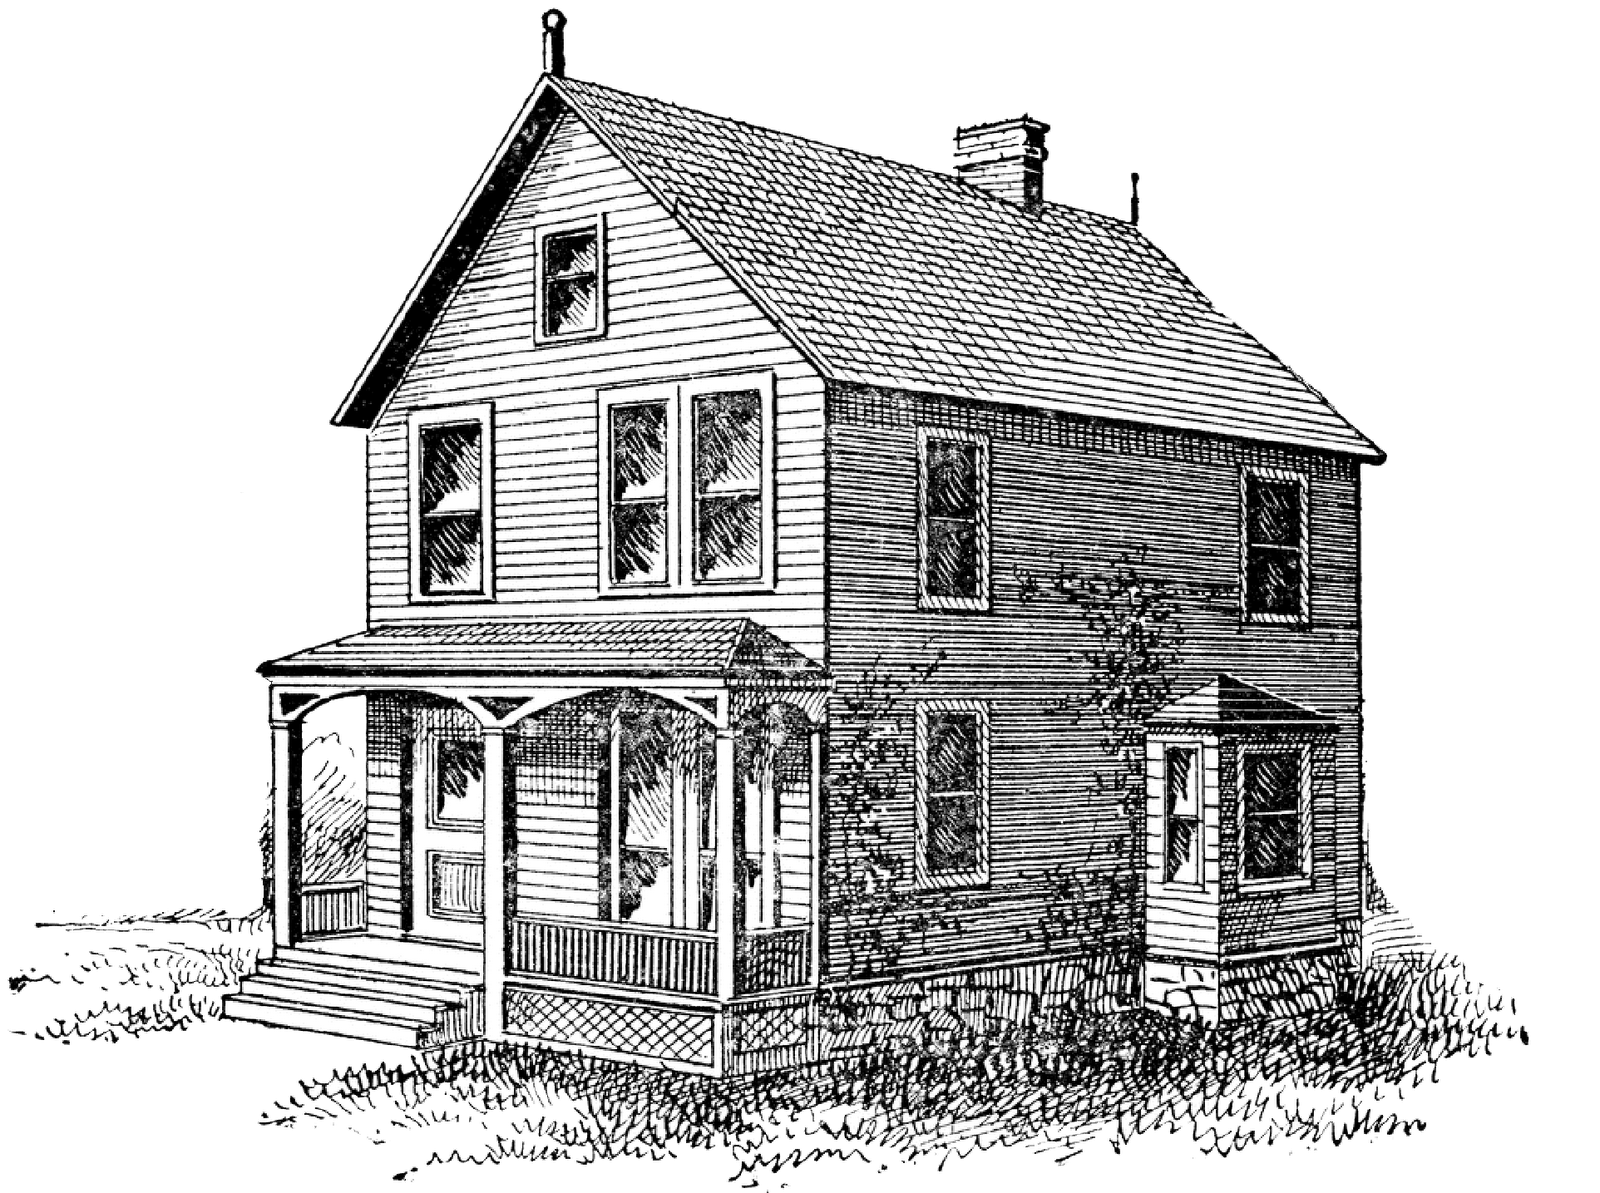 Drawing farmhouse old. Image result for vintage